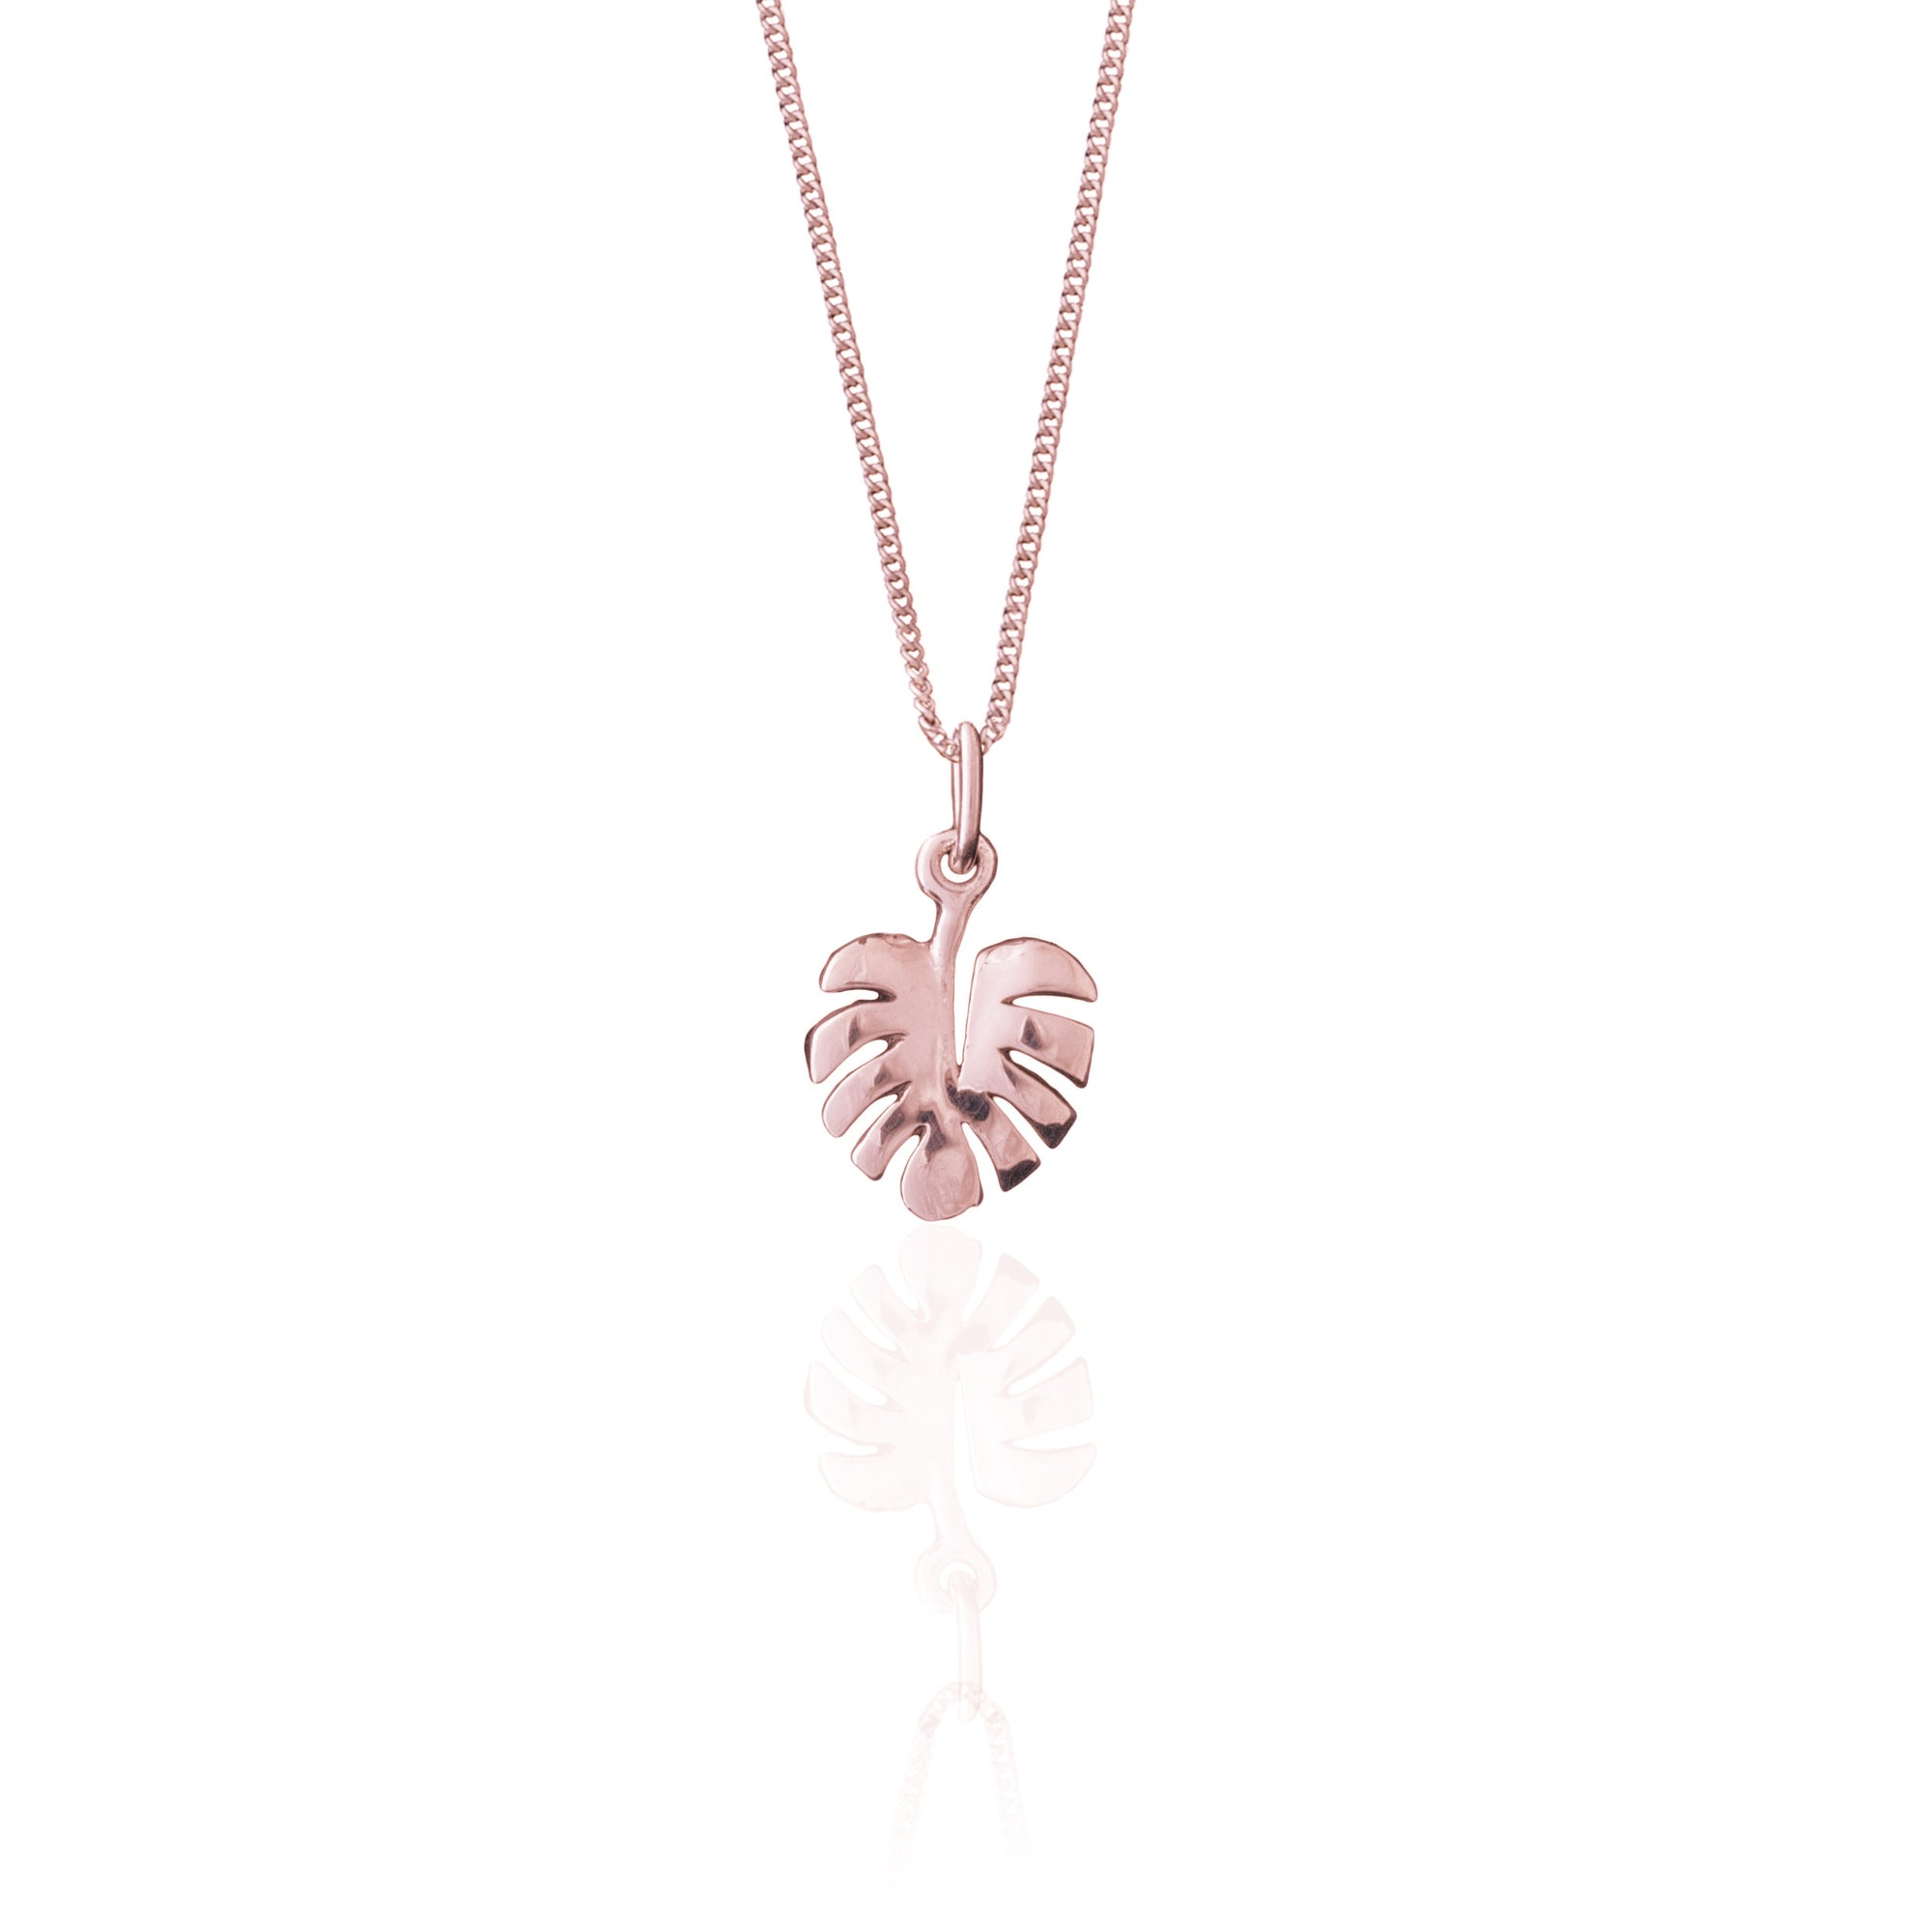 Luna & Rose - Never Leaf Me Charm Necklace -  Rose Gold